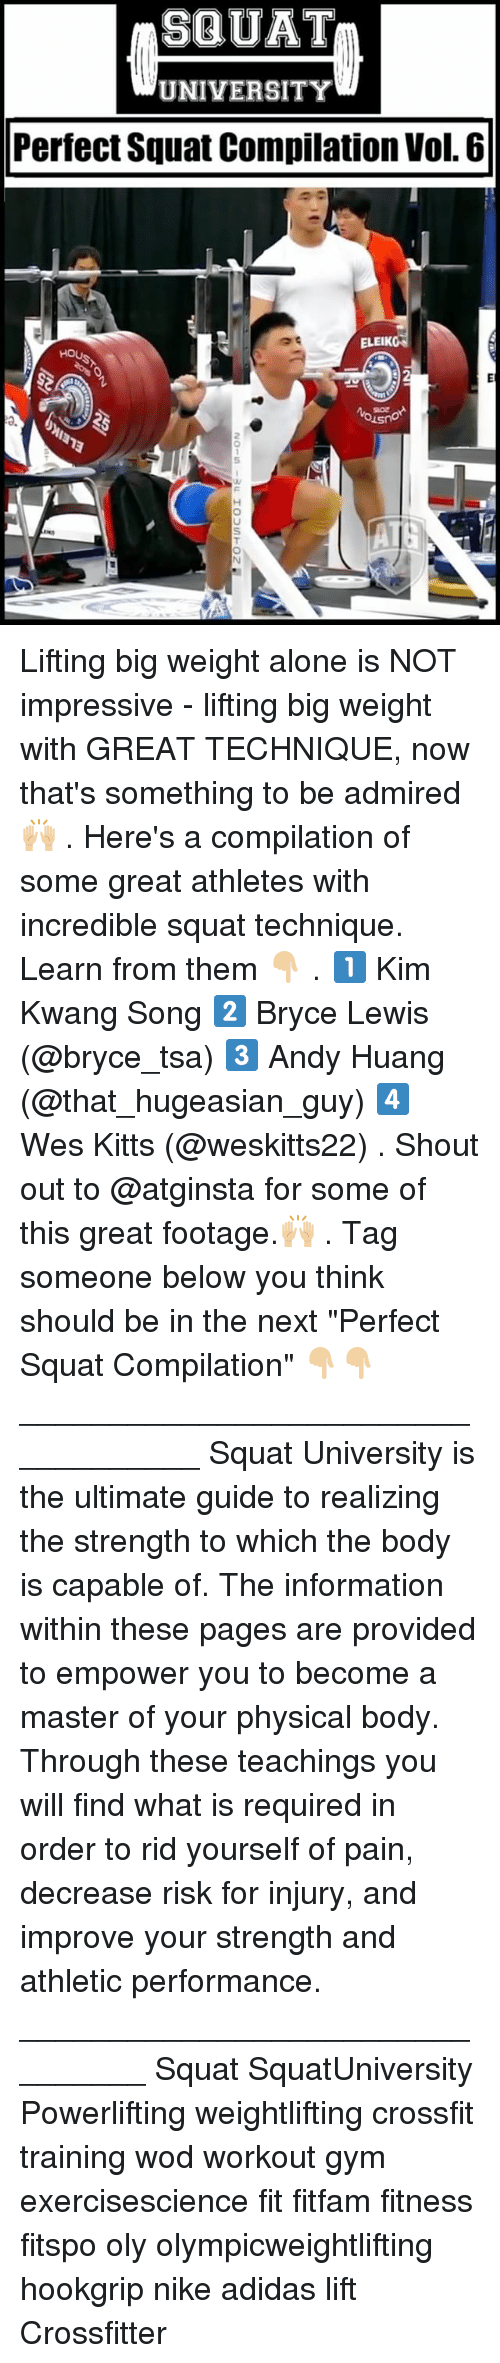 """vols: SQUAT  UNIVERSITY  Perfect Squat Compilation Vol. 6  ELEIK  0. Lifting big weight alone is NOT impressive - lifting big weight with GREAT TECHNIQUE, now that's something to be admired 🙌🏼 . Here's a compilation of some great athletes with incredible squat technique. Learn from them 👇🏼 . 1️⃣ Kim Kwang Song 2️⃣ Bryce Lewis (@bryce_tsa) 3️⃣ Andy Huang (@that_hugeasian_guy) 4️⃣ Wes Kitts (@weskitts22) . Shout out to @atginsta for some of this great footage.🙌🏼 . Tag someone below you think should be in the next """"Perfect Squat Compilation"""" 👇🏼👇🏼 ___________________________________ Squat University is the ultimate guide to realizing the strength to which the body is capable of. The information within these pages are provided to empower you to become a master of your physical body. Through these teachings you will find what is required in order to rid yourself of pain, decrease risk for injury, and improve your strength and athletic performance. ________________________________ Squat SquatUniversity Powerlifting weightlifting crossfit training wod workout gym exercisescience fit fitfam fitness fitspo oly olympicweightlifting hookgrip nike adidas lift Crossfitter"""